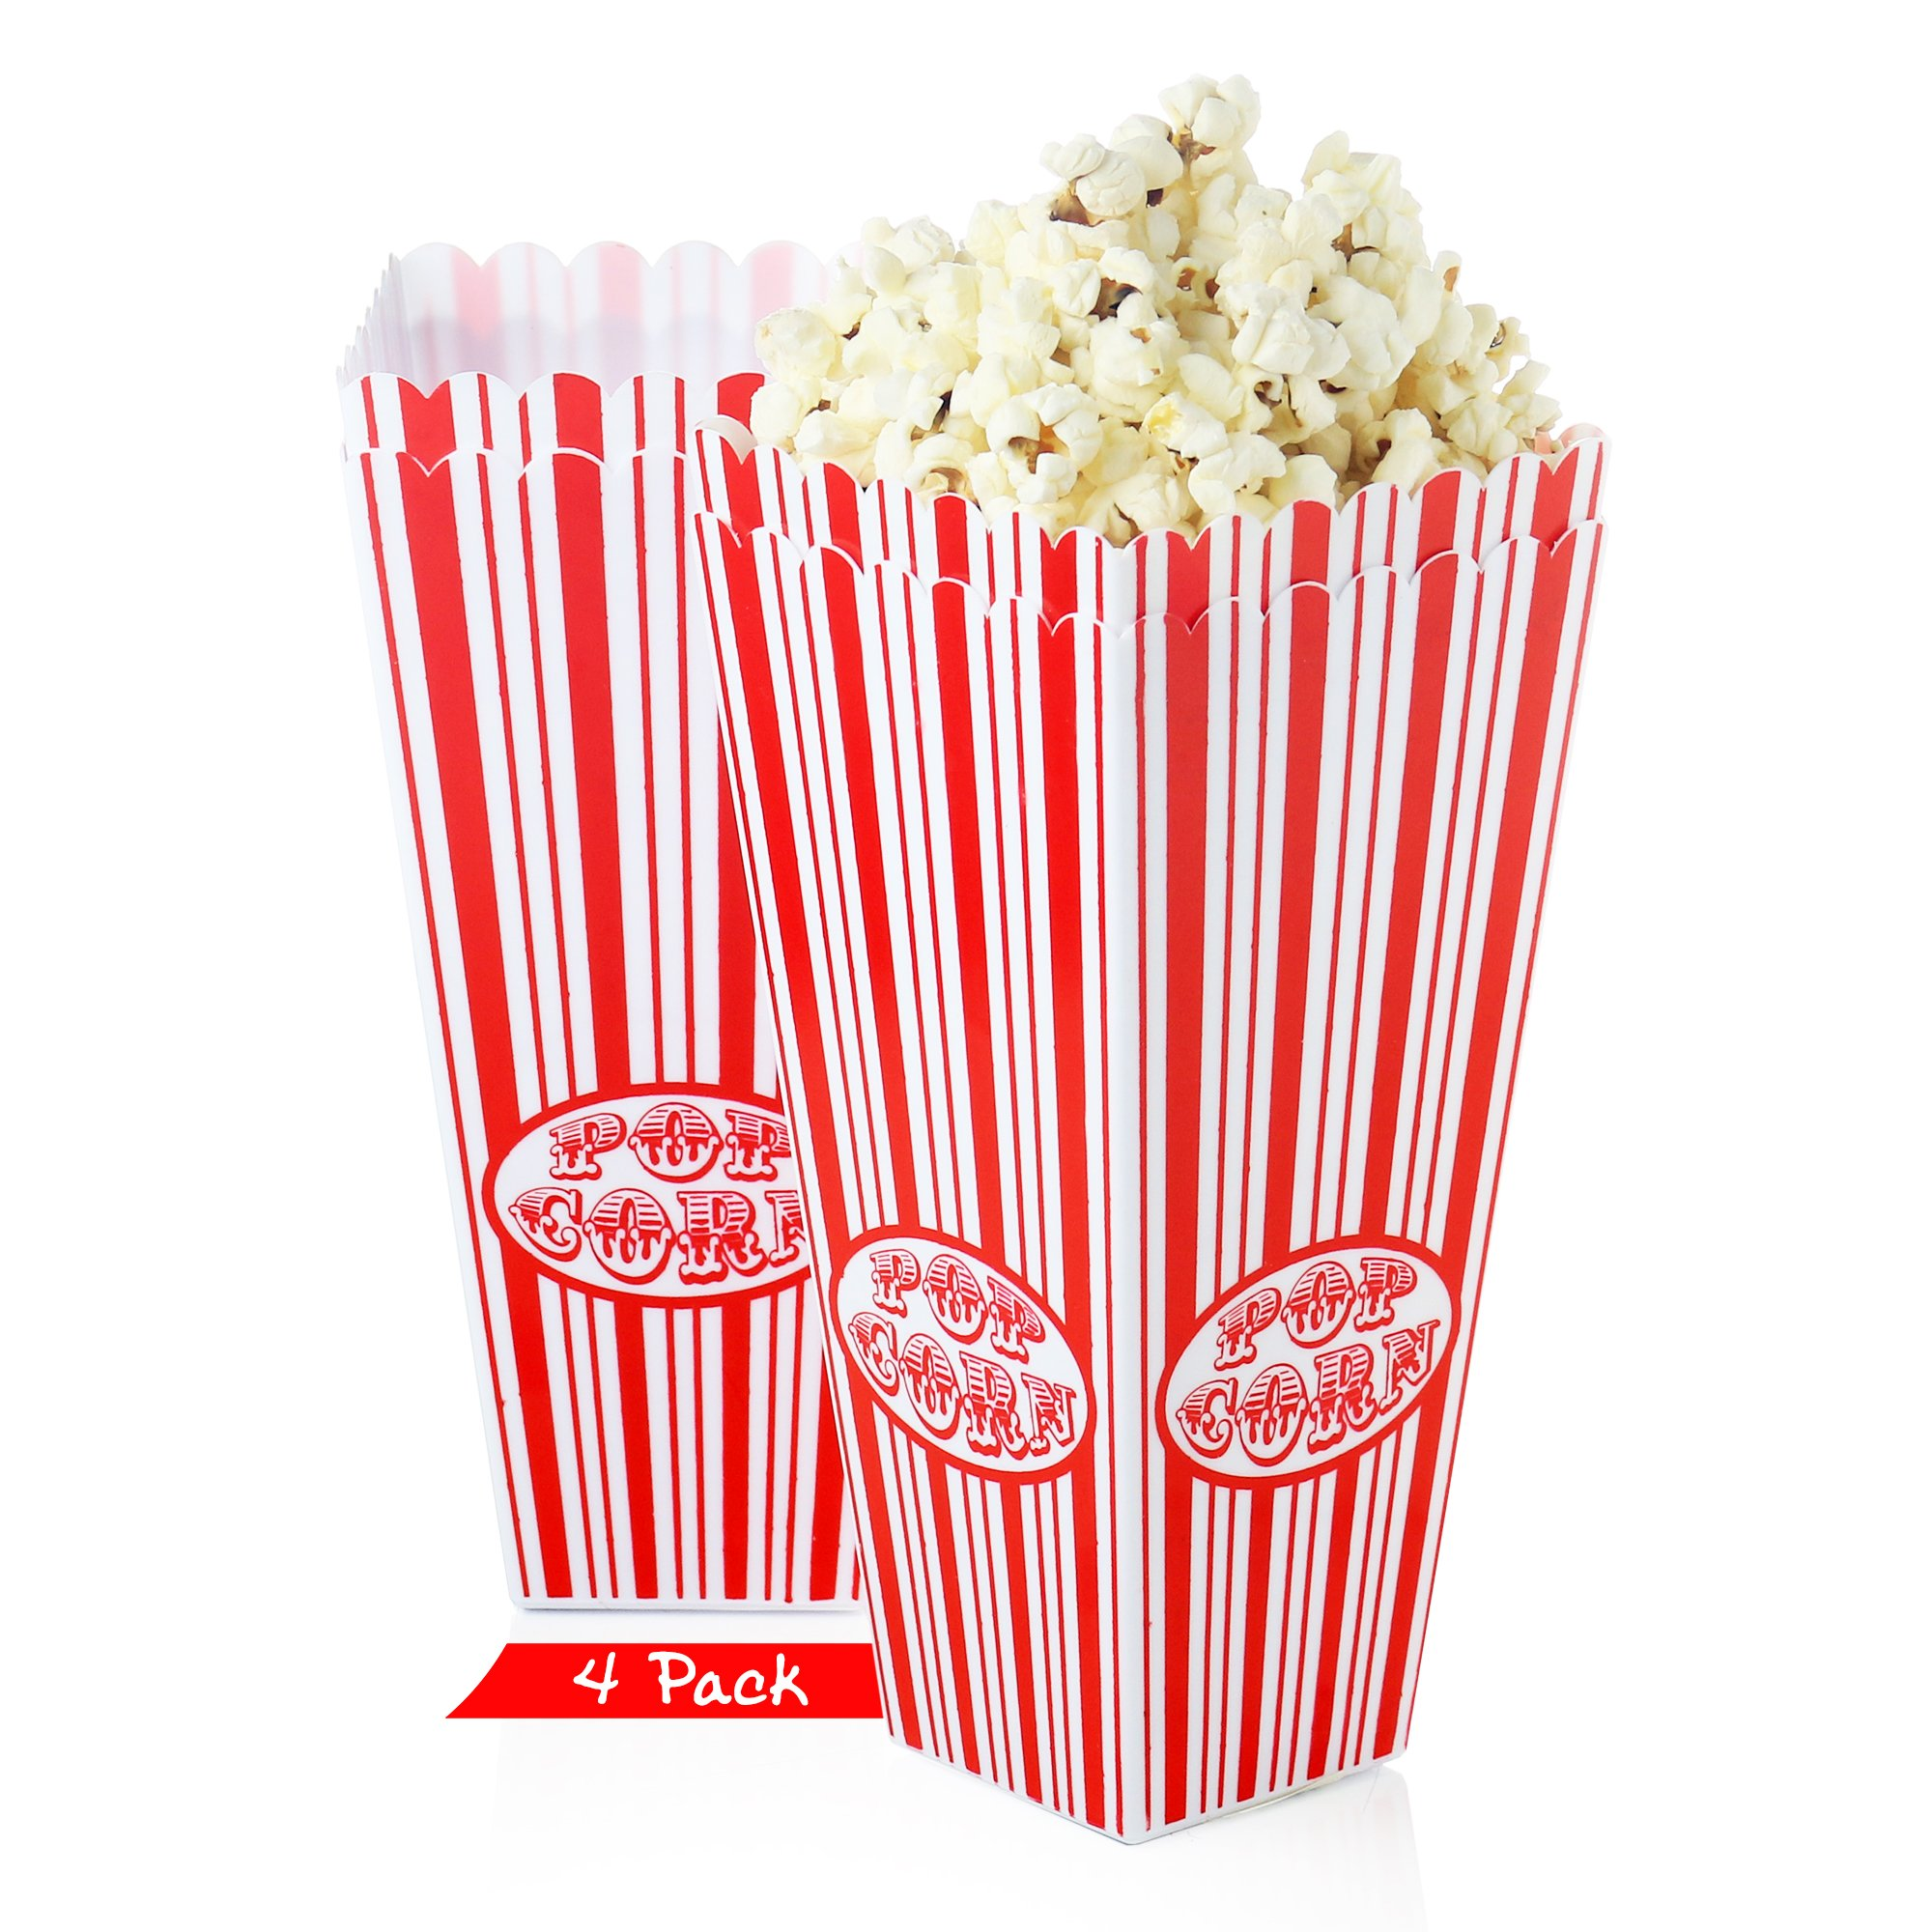 Set of 4 - Popcorn bucket Plastic Container, Reusable Bowel Red & White Stripes, Movie Theater Tub (Pack of 4)